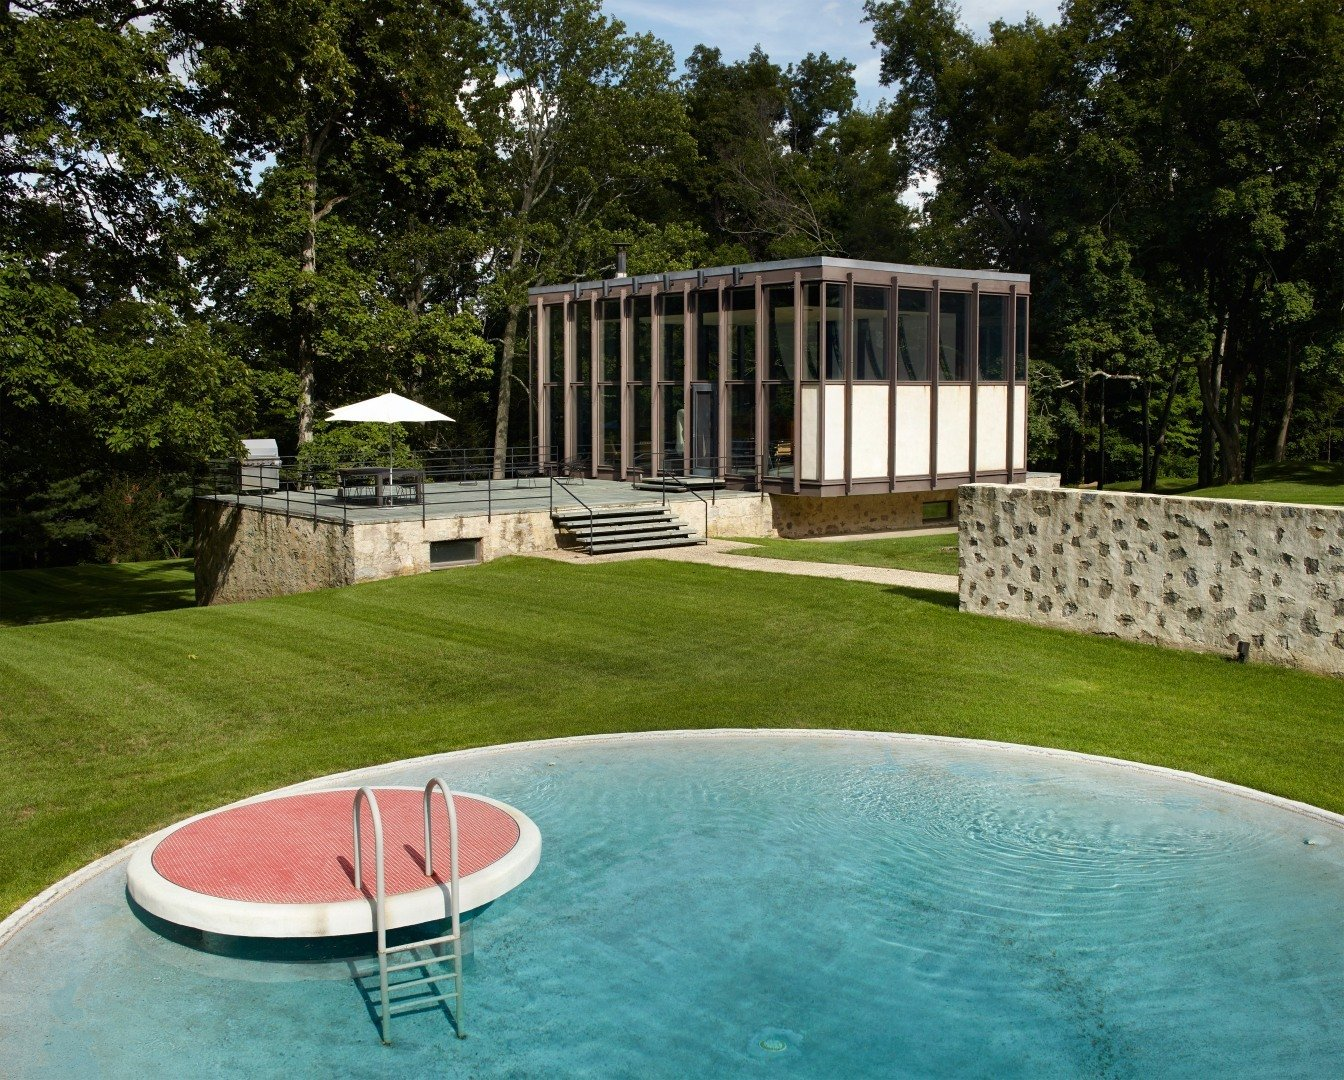 The new pool house and transformed barn that were created by Roger Ferris + Partners during a recent renovation, work together to create a courtyard that borders the original swimming pool. He finished the lilypad diving platform with red tile. To further connect the two iconic properties, the twin of this circular pool design can actually be found at the Glass House. After a Year on the Market, Philip Johnson's Wiley House Drops by $2 Million - Photo 3 of 10